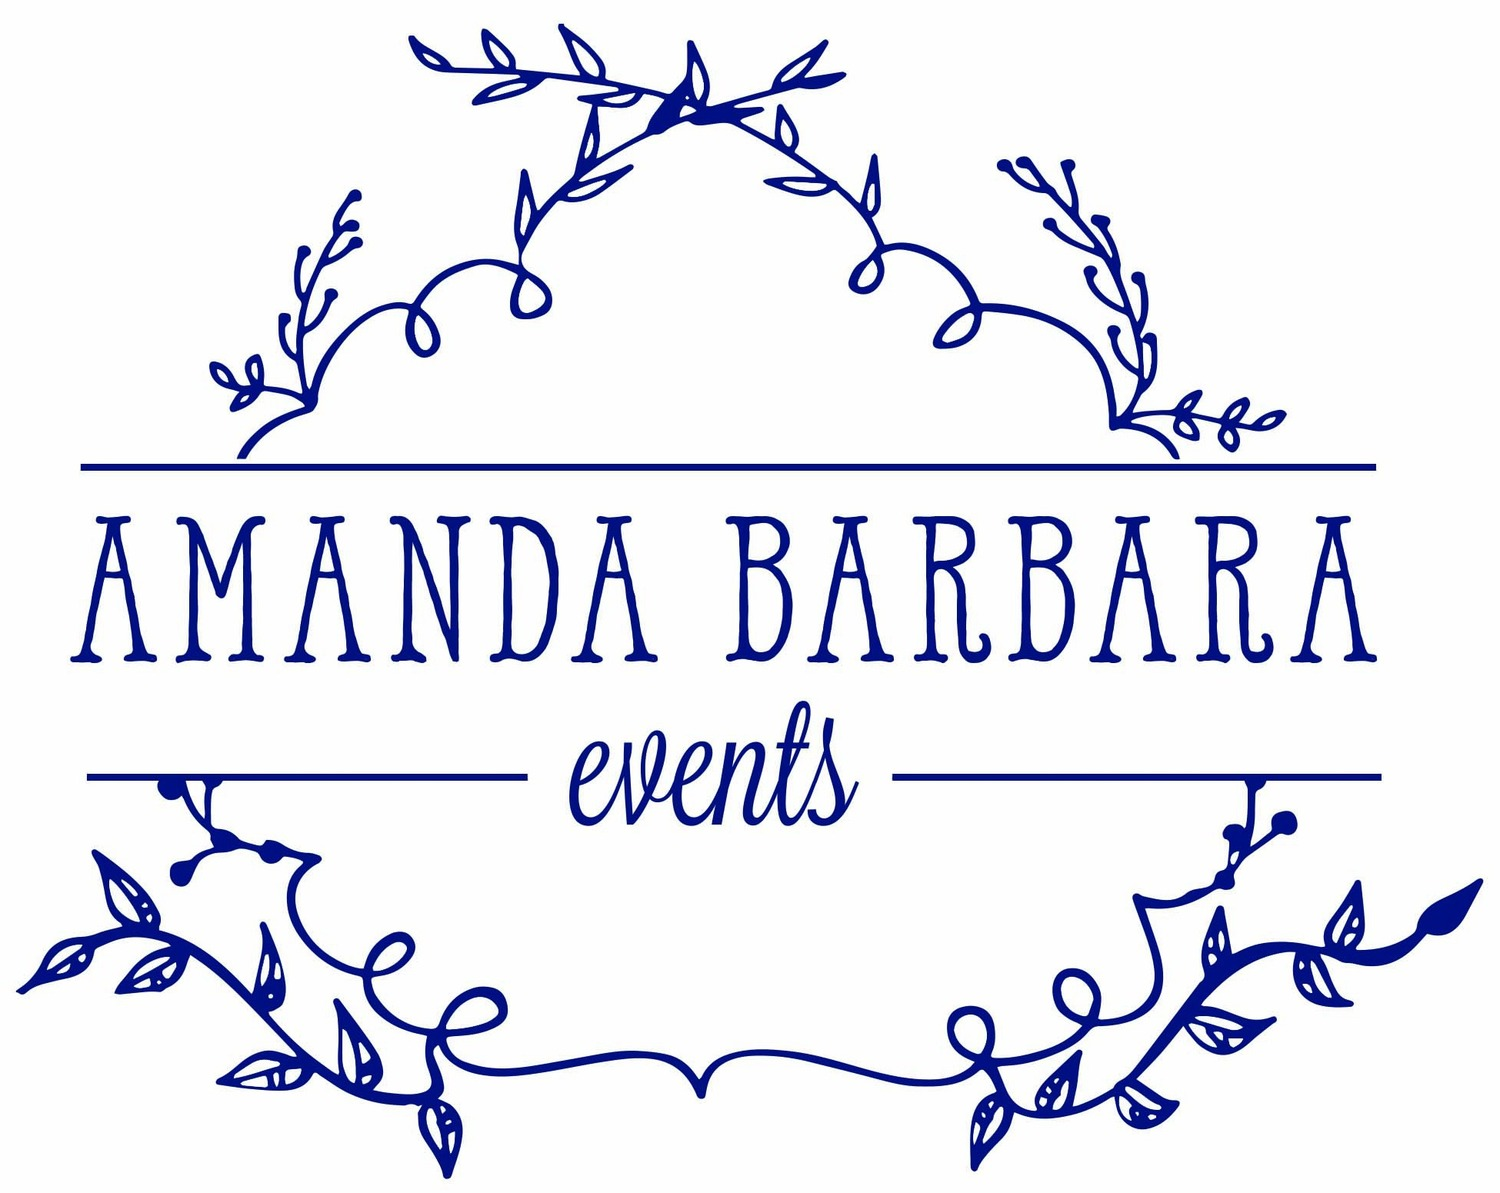 Amanda Barbara Events